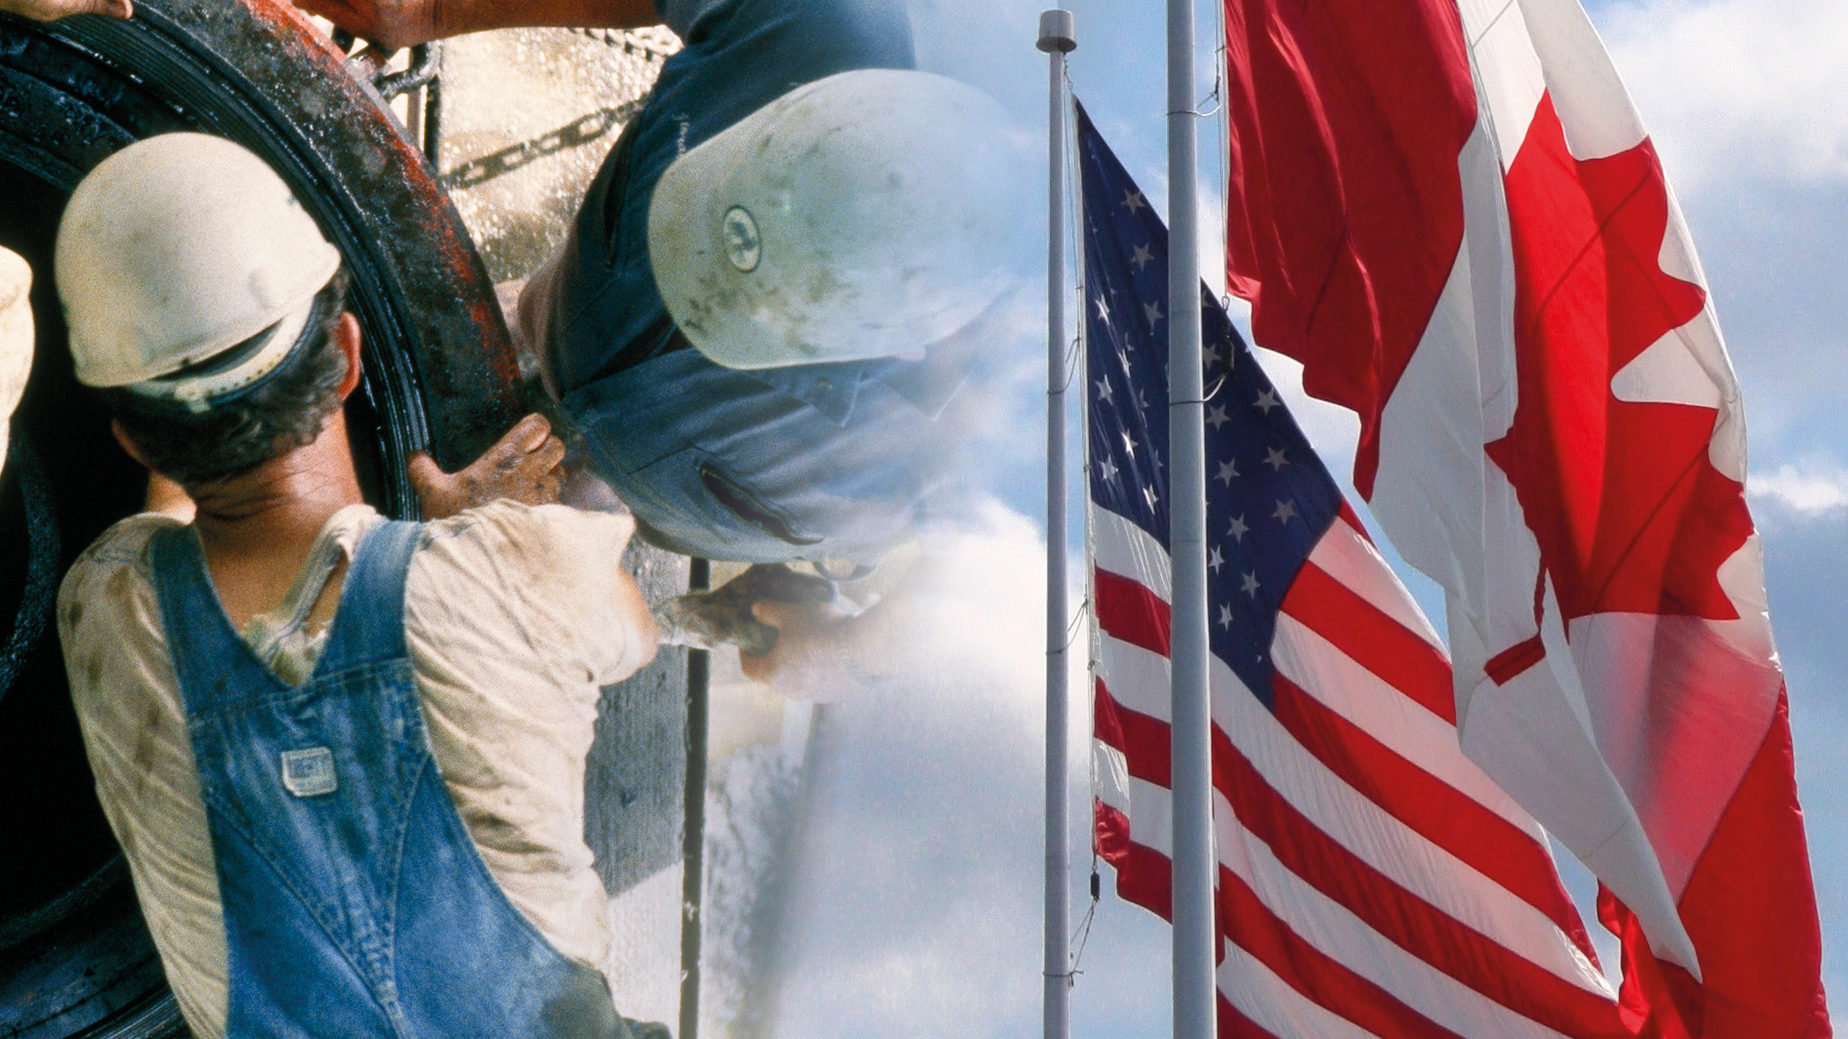 US energy jobs surged while Canada's staggered: 2009 to 2018